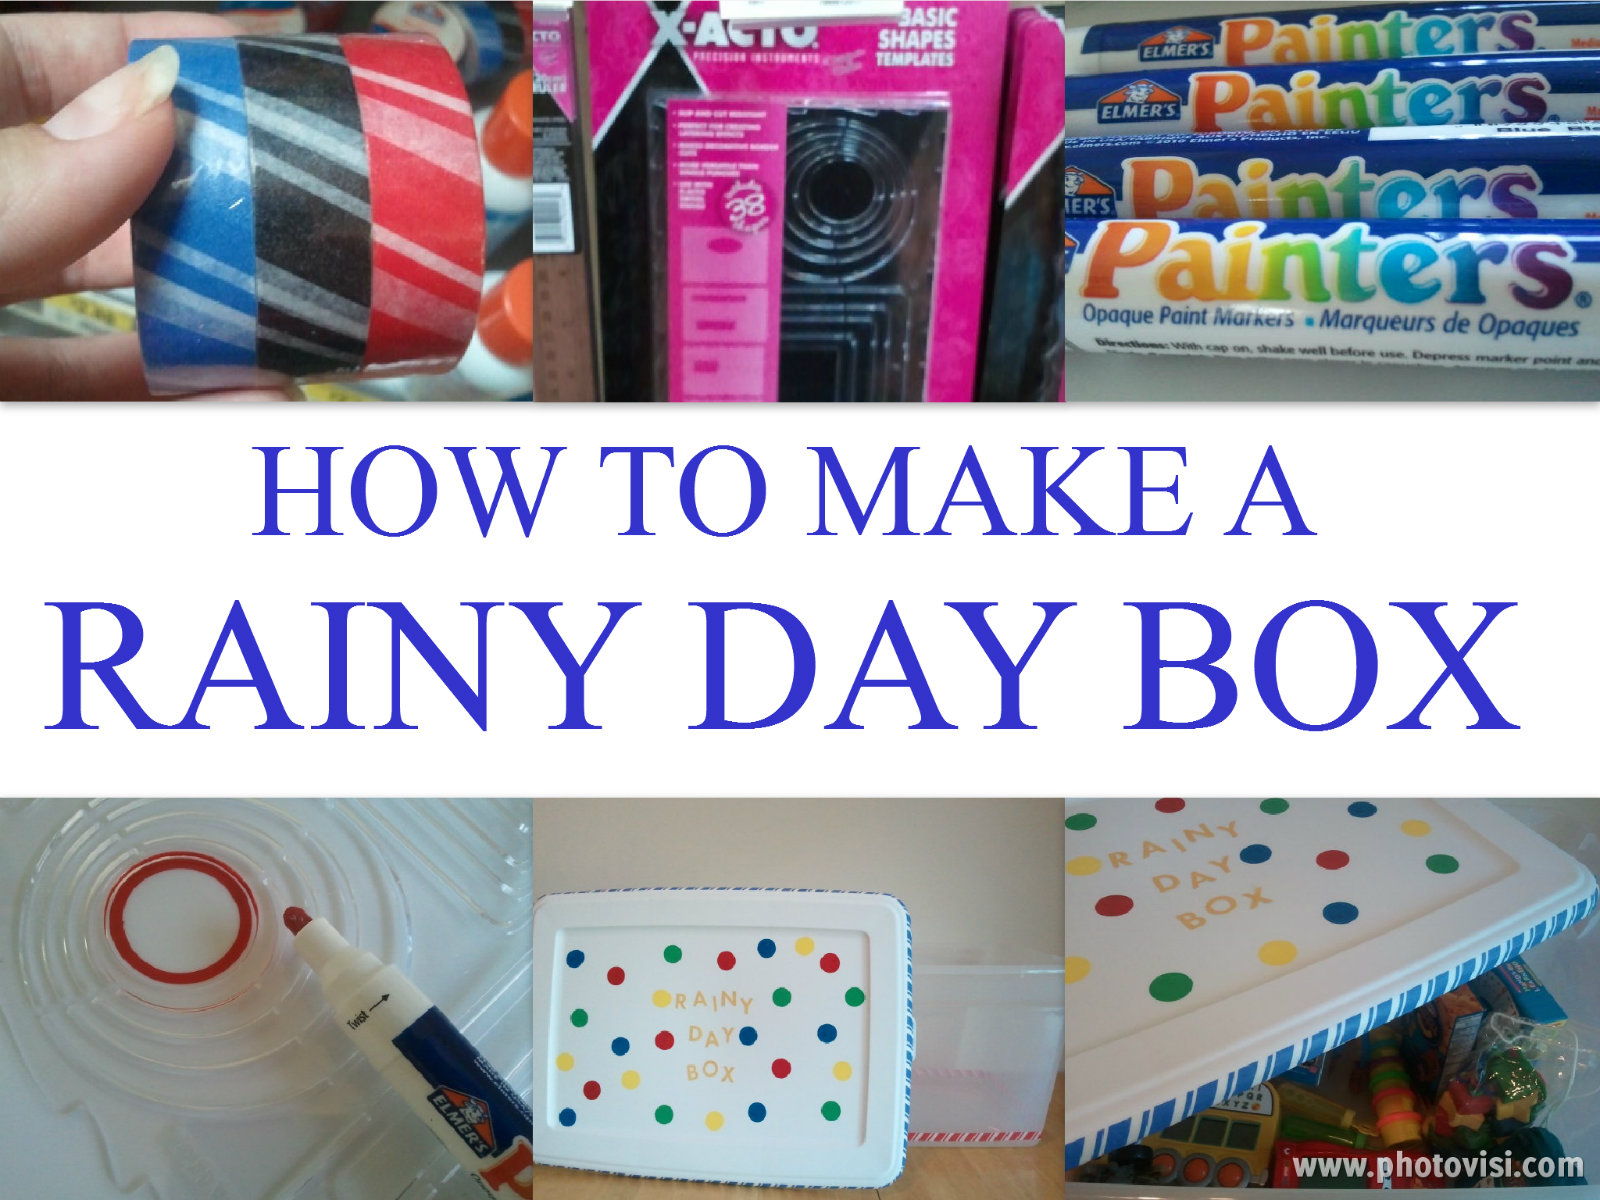 RAINY DAY BOX COLLAGE